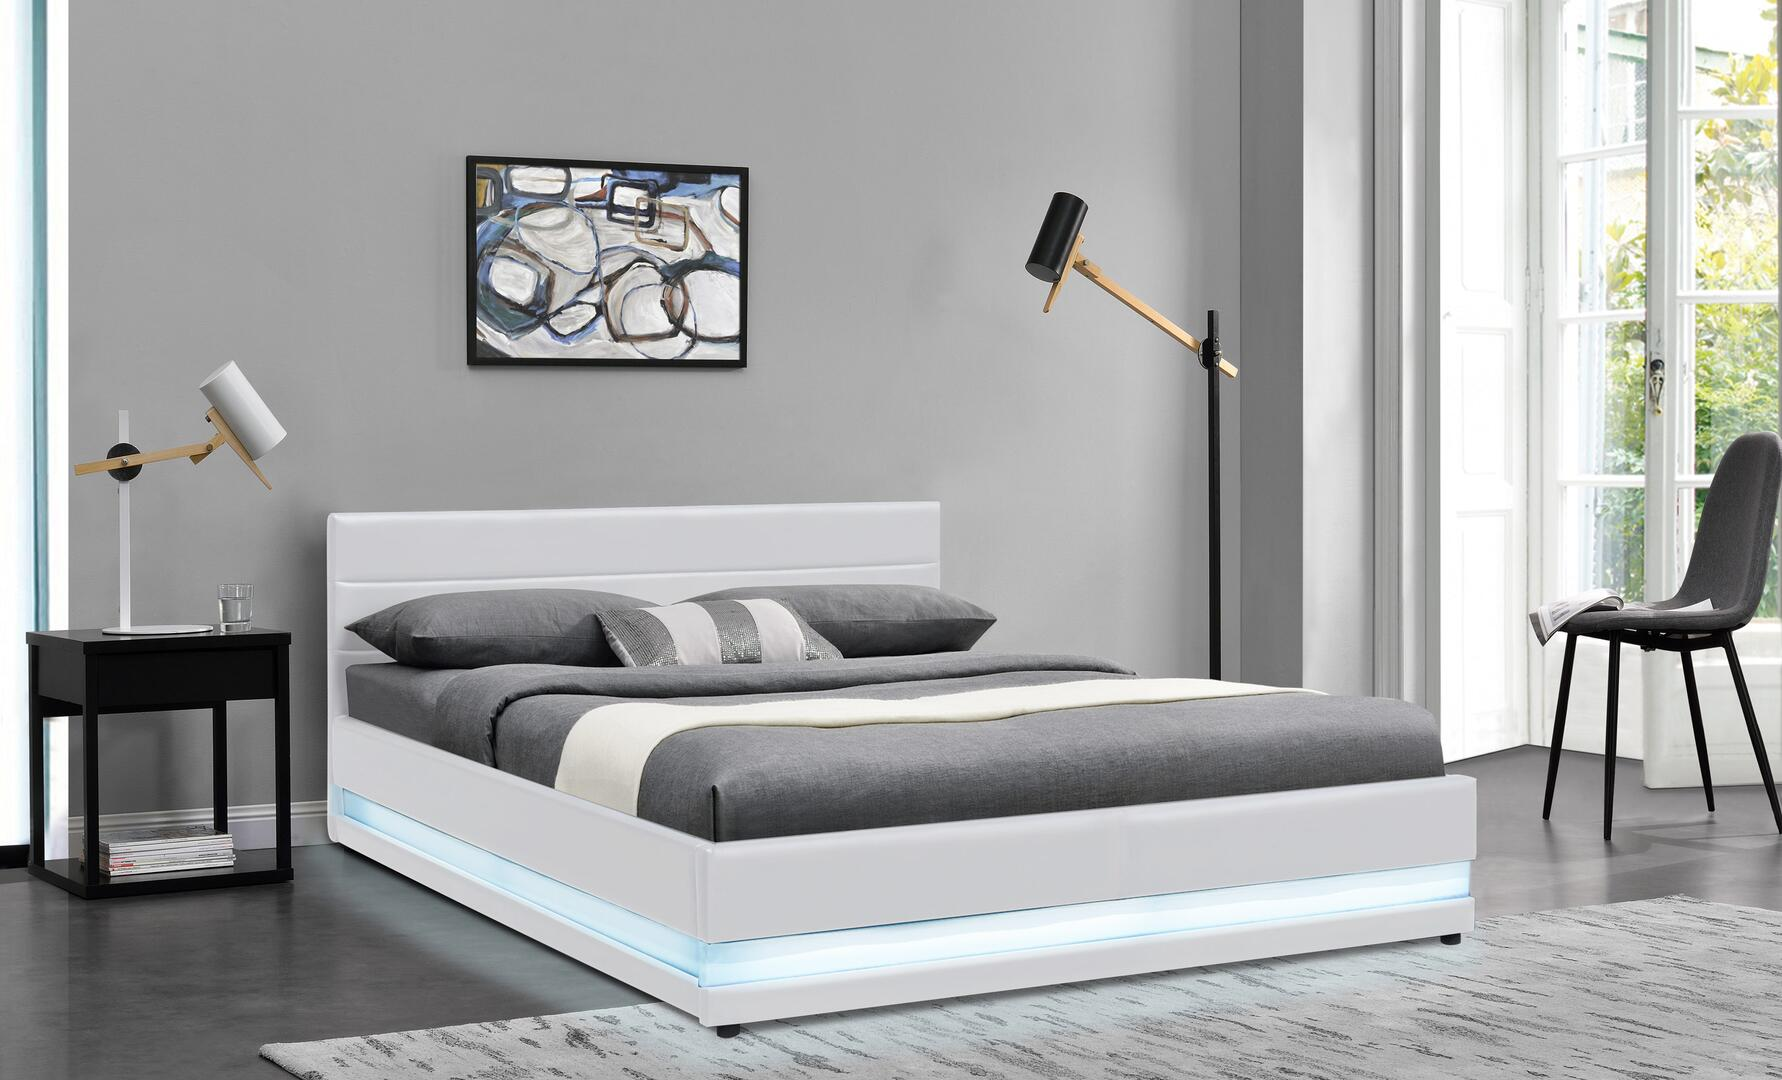 sereneqnwh21 LED Beds